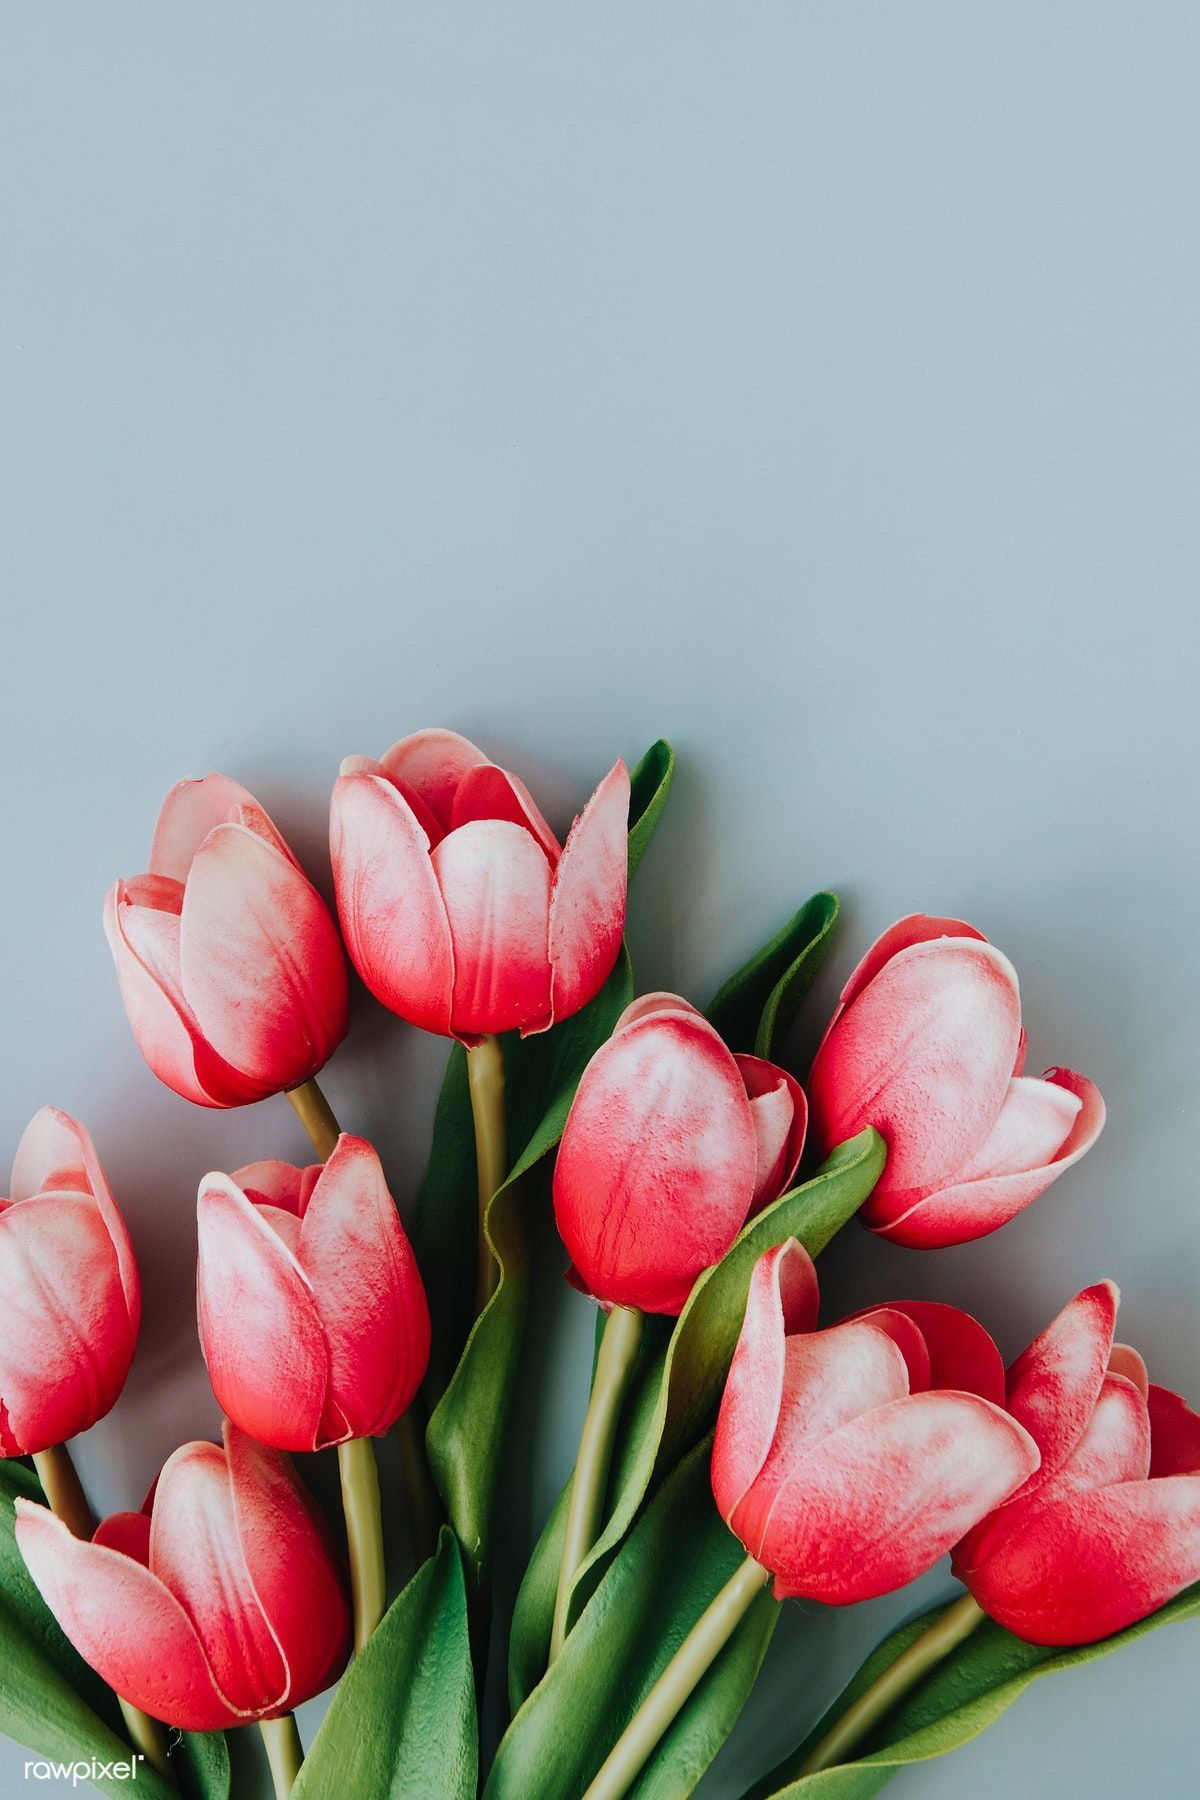 Download Premium Photo Of Red And White Tulip On Blank Blue Background Wallpapers Hintergrundbilder Blau 2020 Mavi Arka Planlar Cicek Laleler